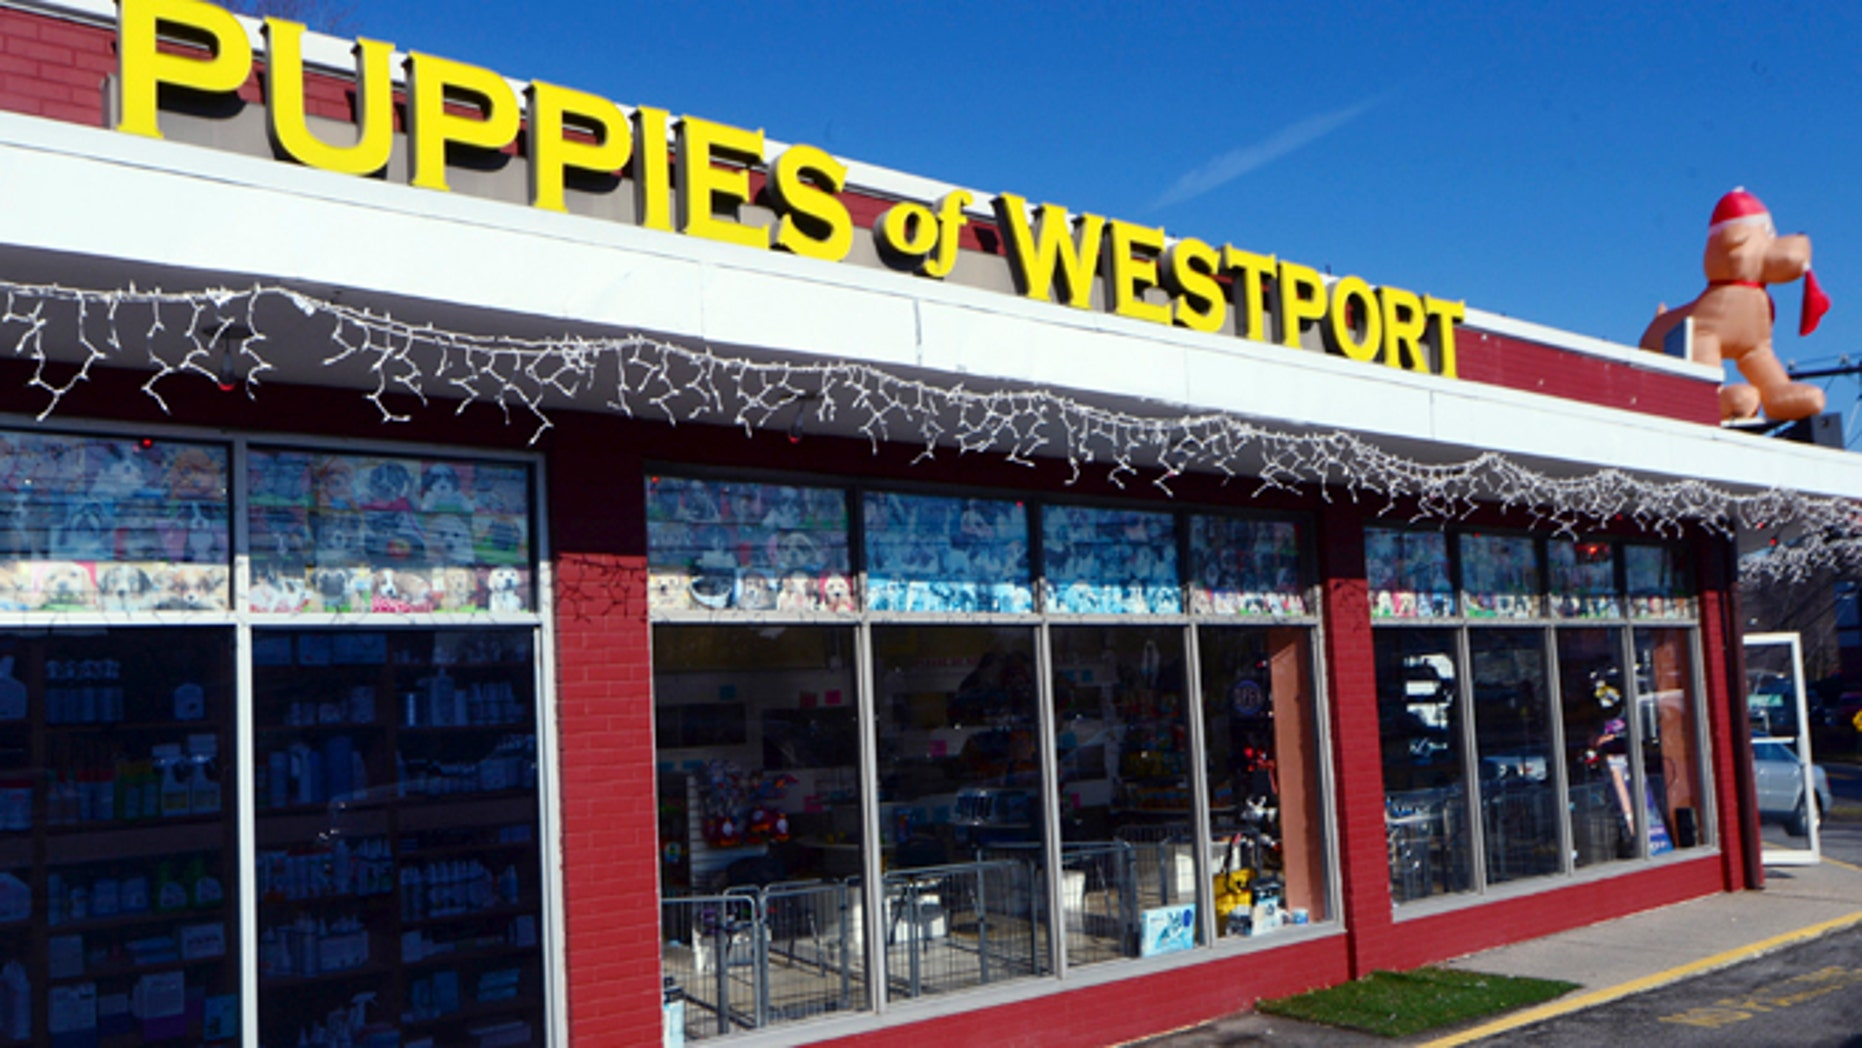 Jan. 15, 2014: Puppies of Westport, a pet shop in Westport, Conn., is open for business after police said a woman using a rock tried to smash open the front door of the closed pet store.